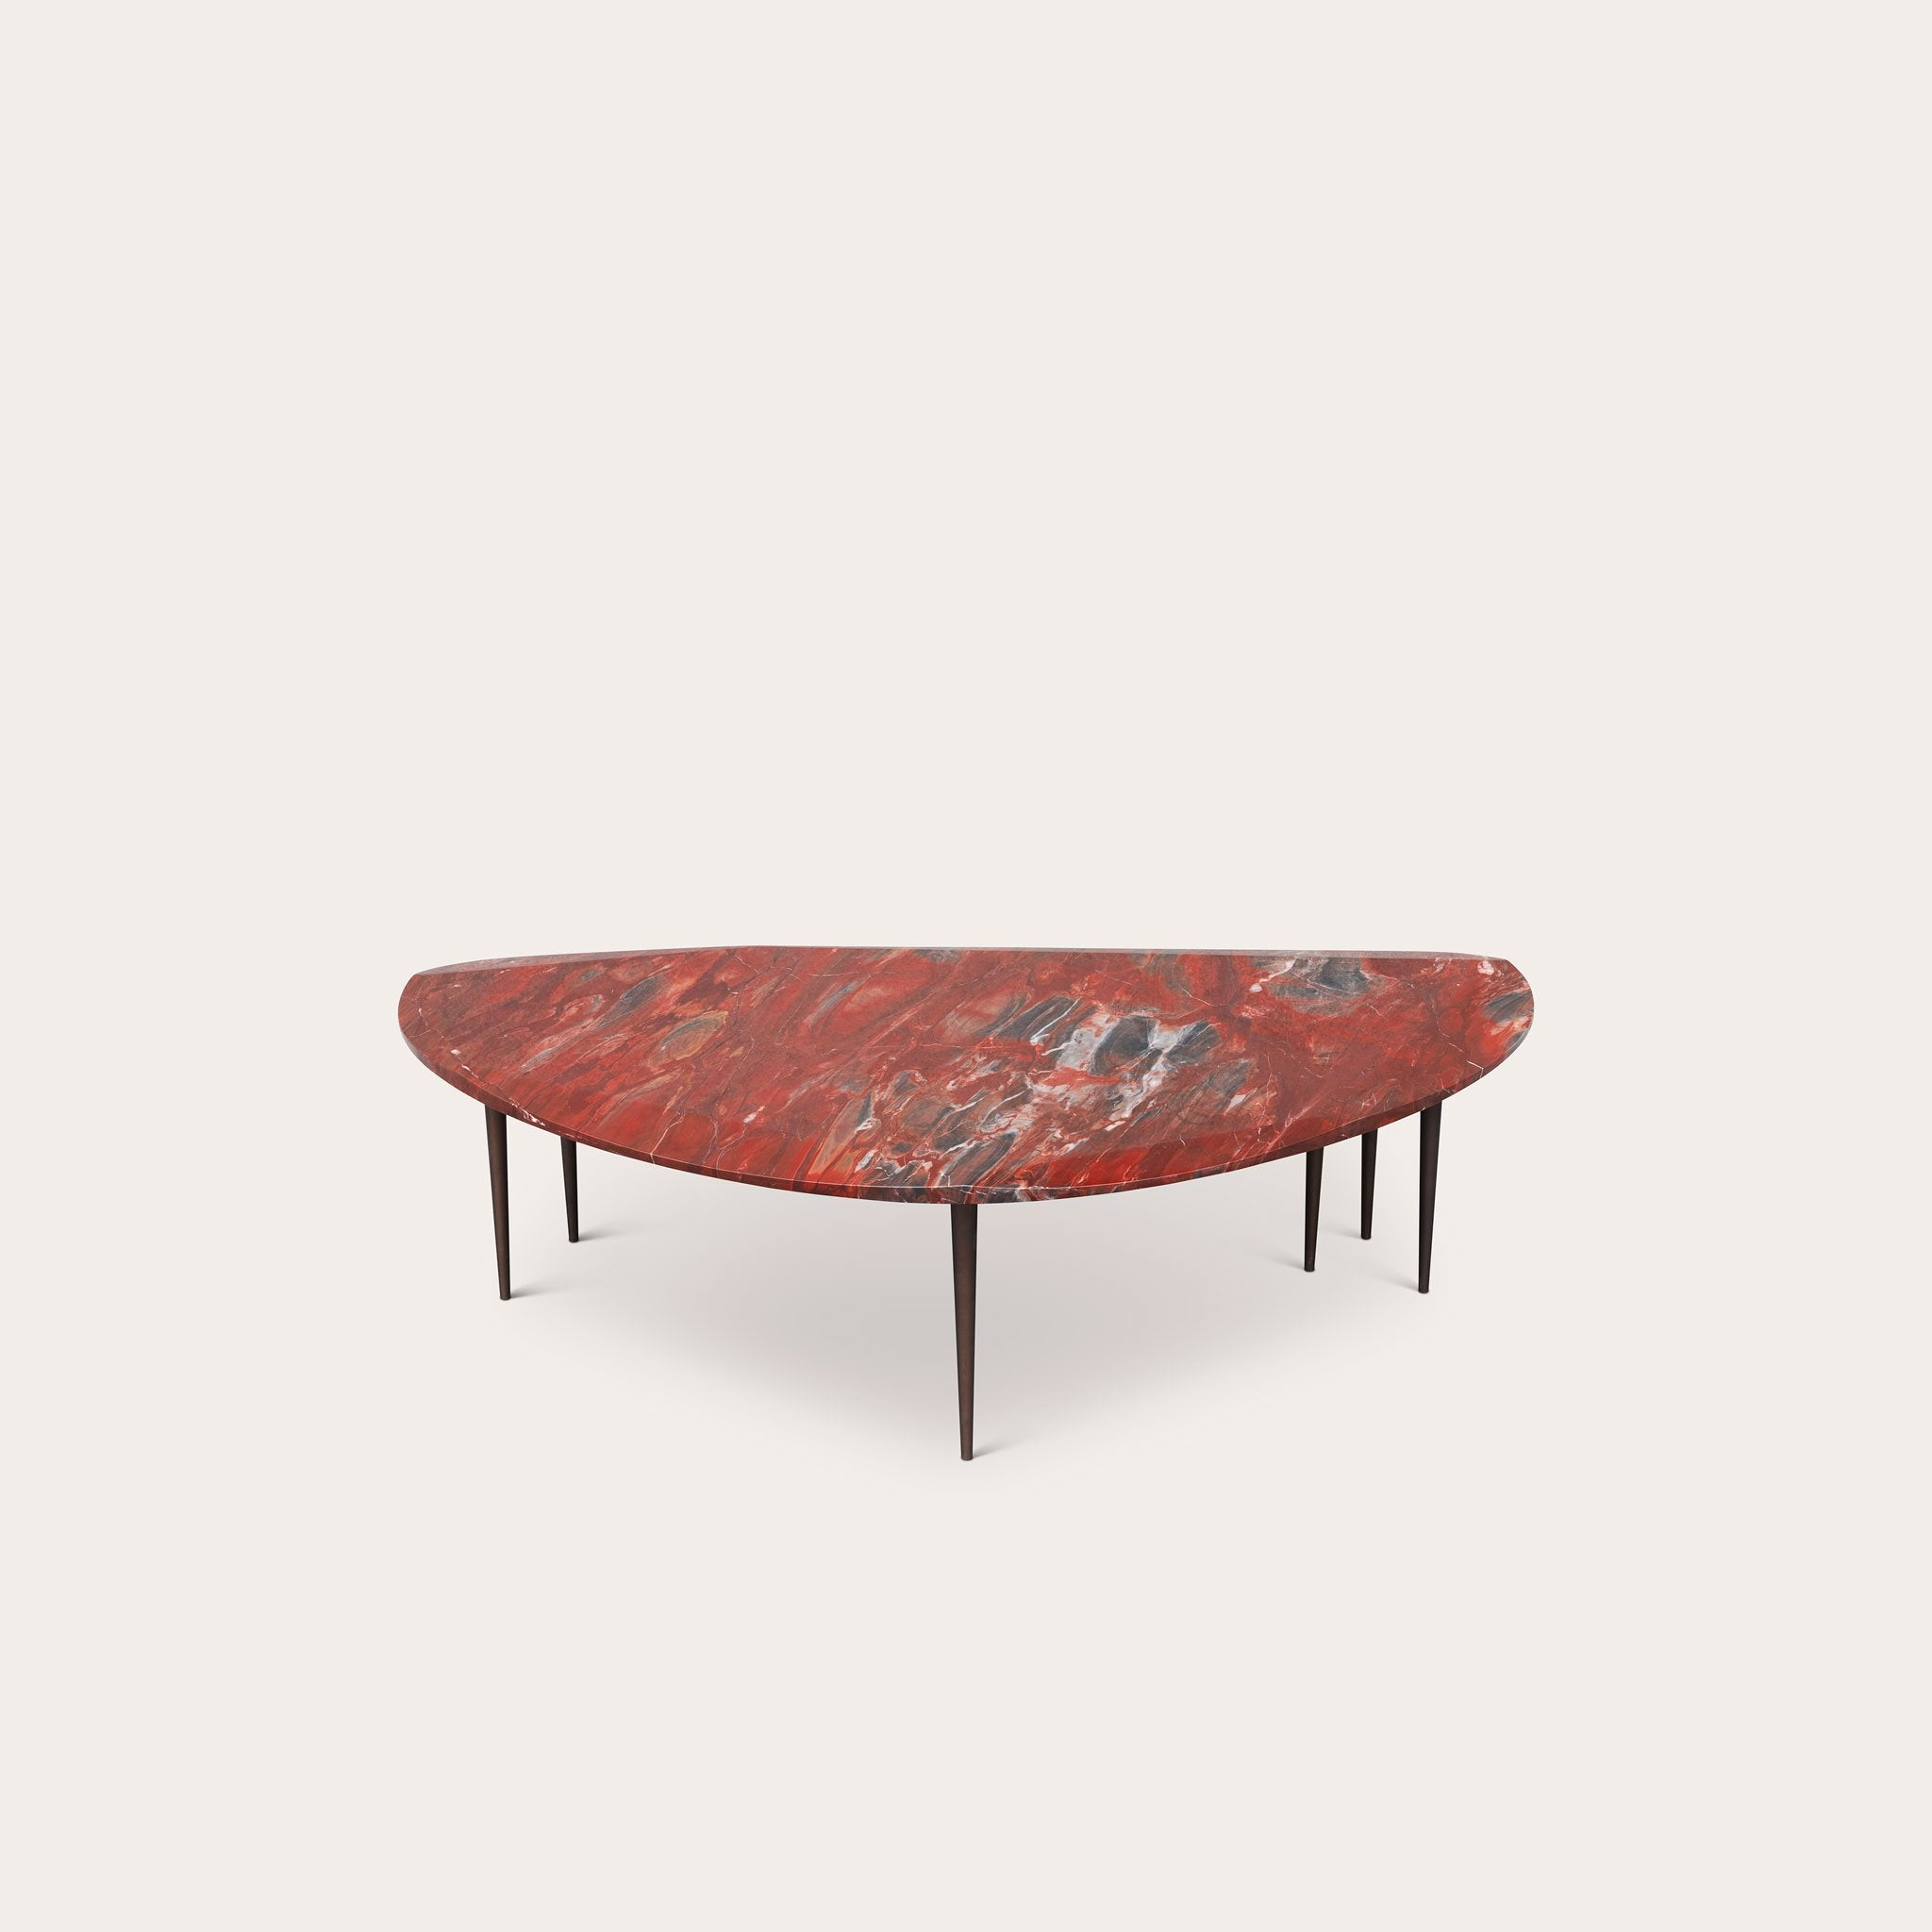 LandutimTable Tables Simone Coste Designer Furniture Sku: 992-230-10063